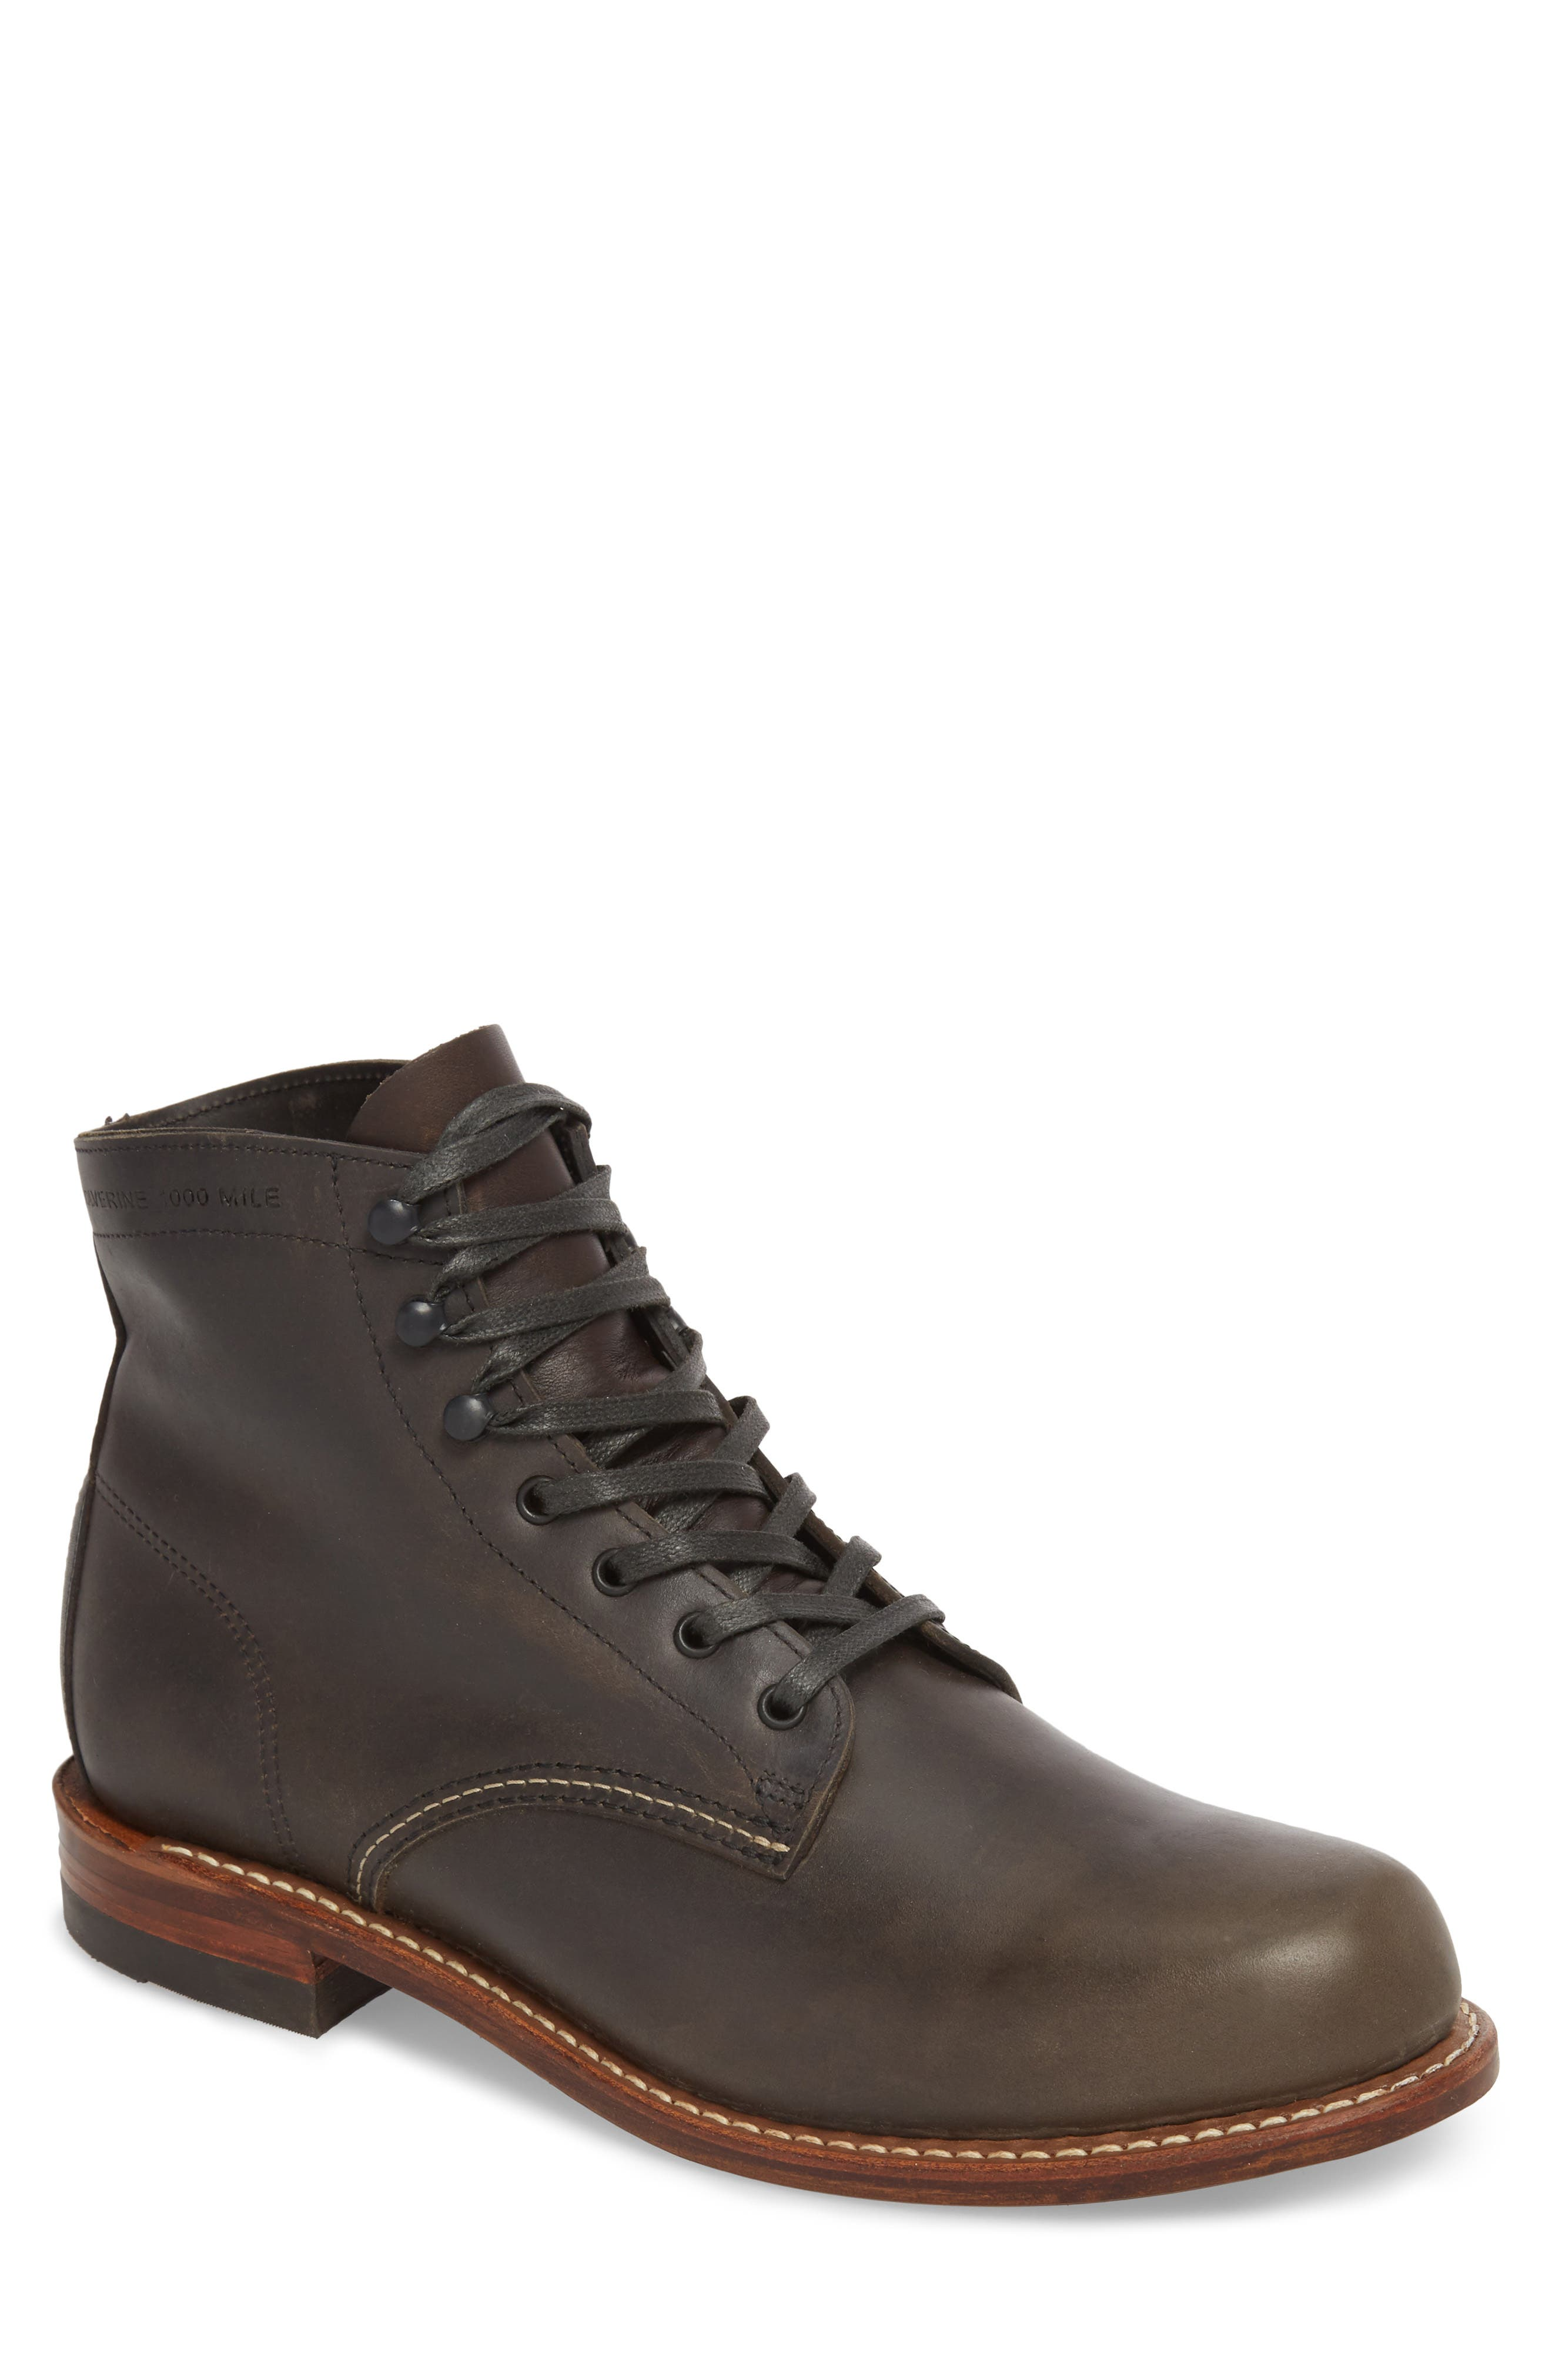 '1000 Mile' Plain Toe Boot,                         Main,                         color, CHARCOAL